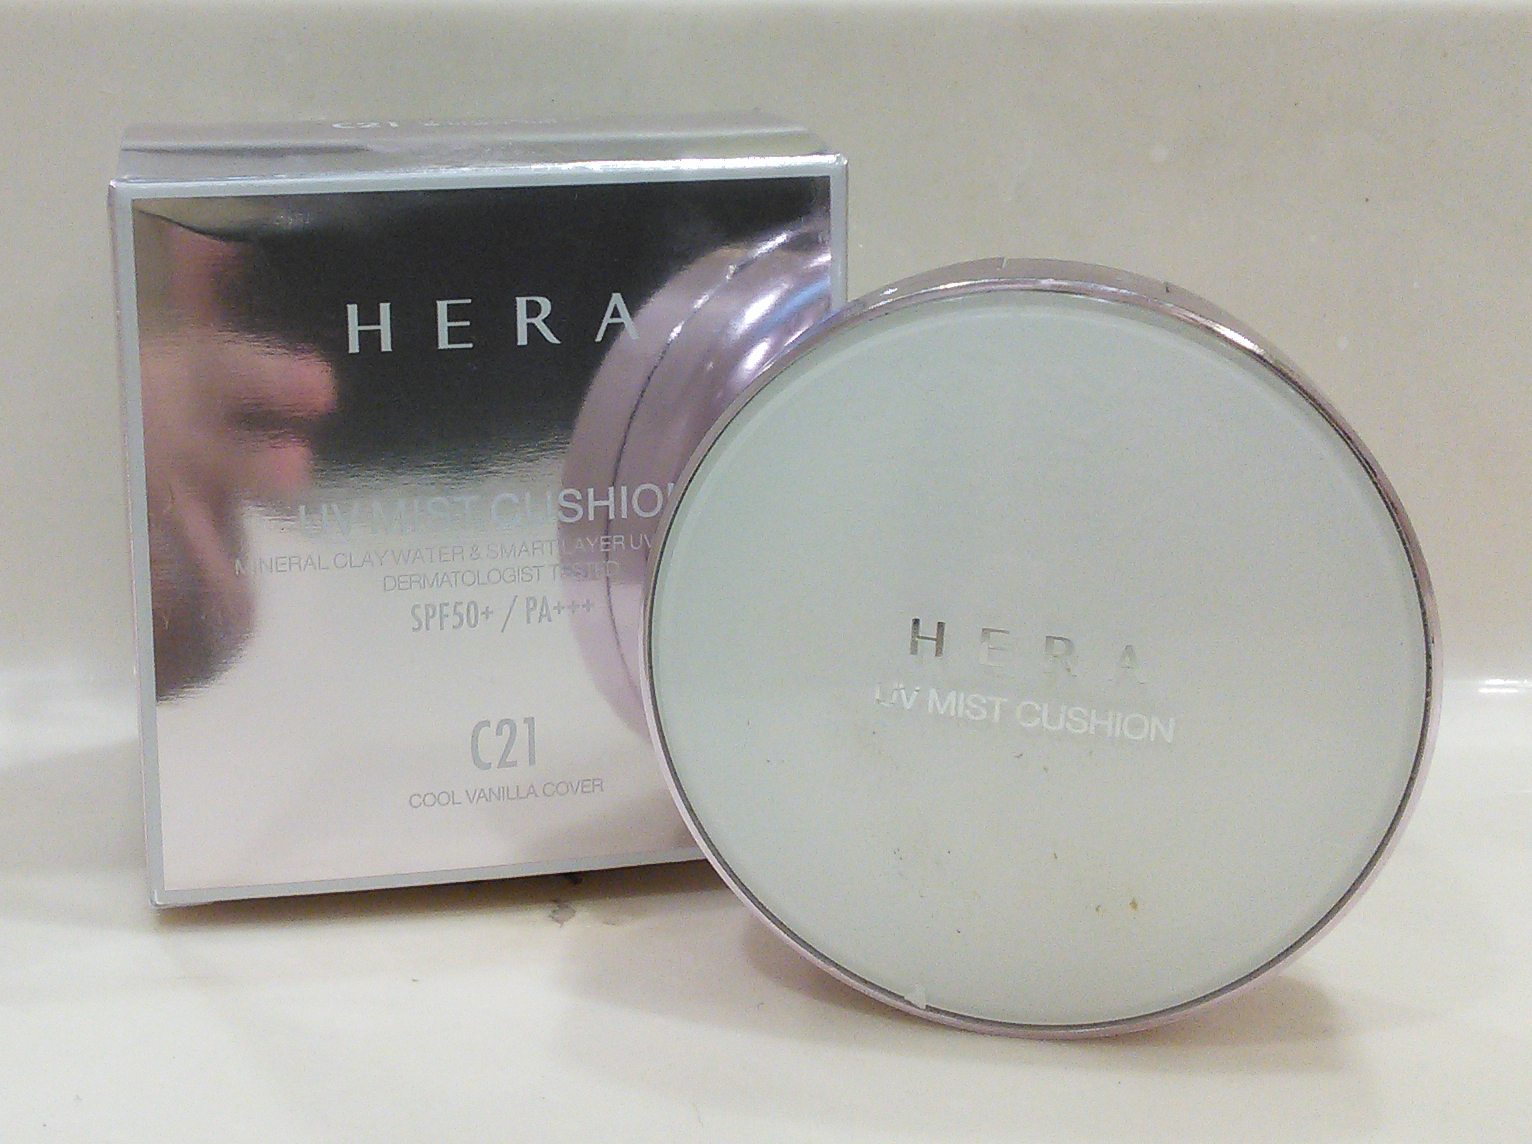 Review Hera Uv Mist Cushion My Favorite Base Makeup Ever Fifty